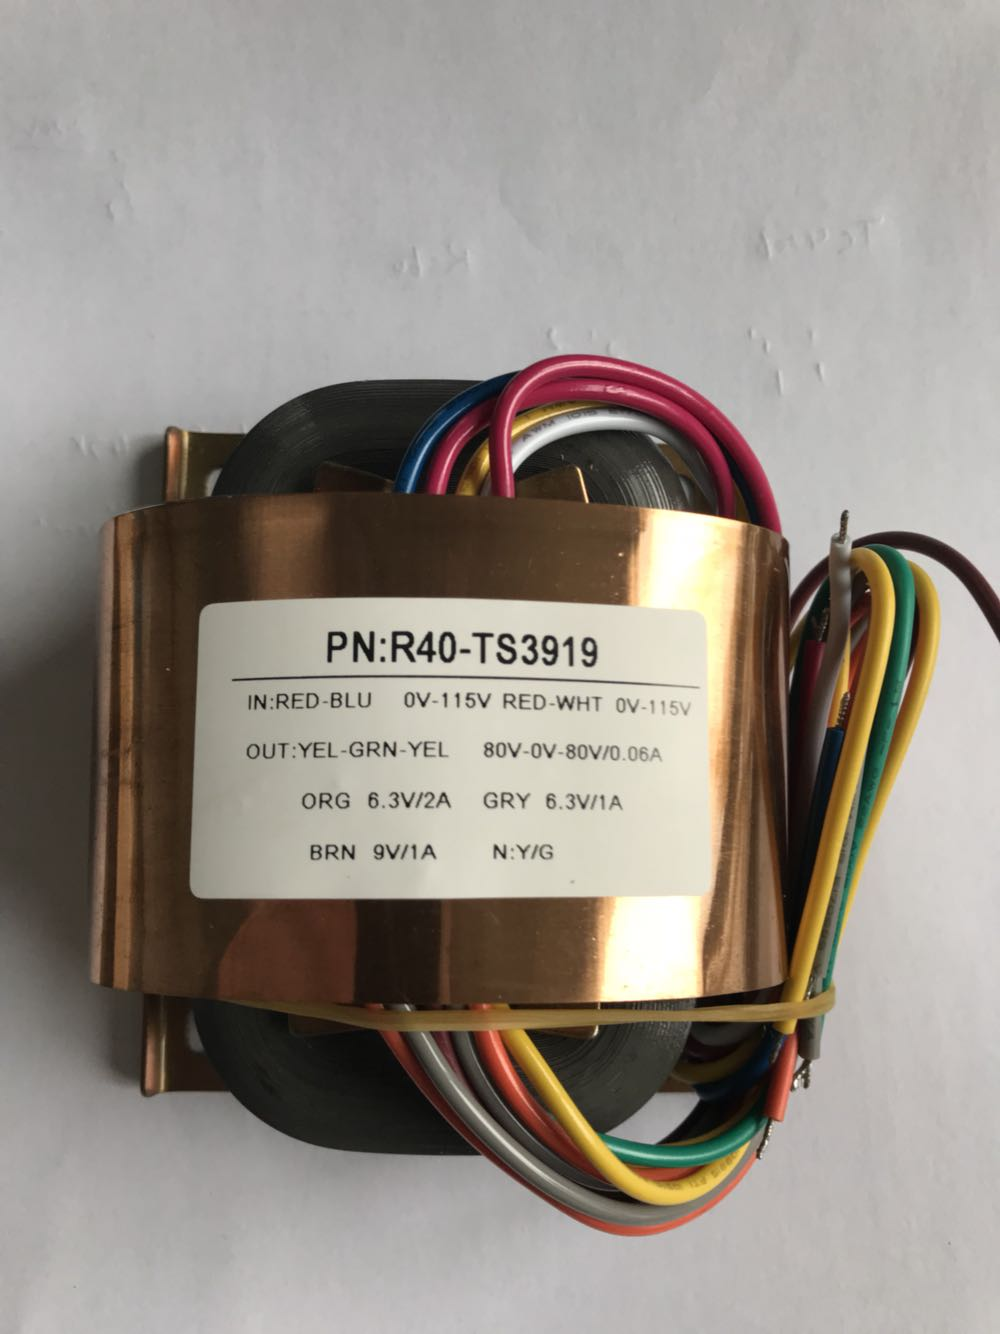 80V-0-80V 60mA 6.3V 2A 6.3V 1A 9V 1A  R Core Transformer 50VA R40 custom transformer 115V/115V copper shield Power amplifier80V-0-80V 60mA 6.3V 2A 6.3V 1A 9V 1A  R Core Transformer 50VA R40 custom transformer 115V/115V copper shield Power amplifier